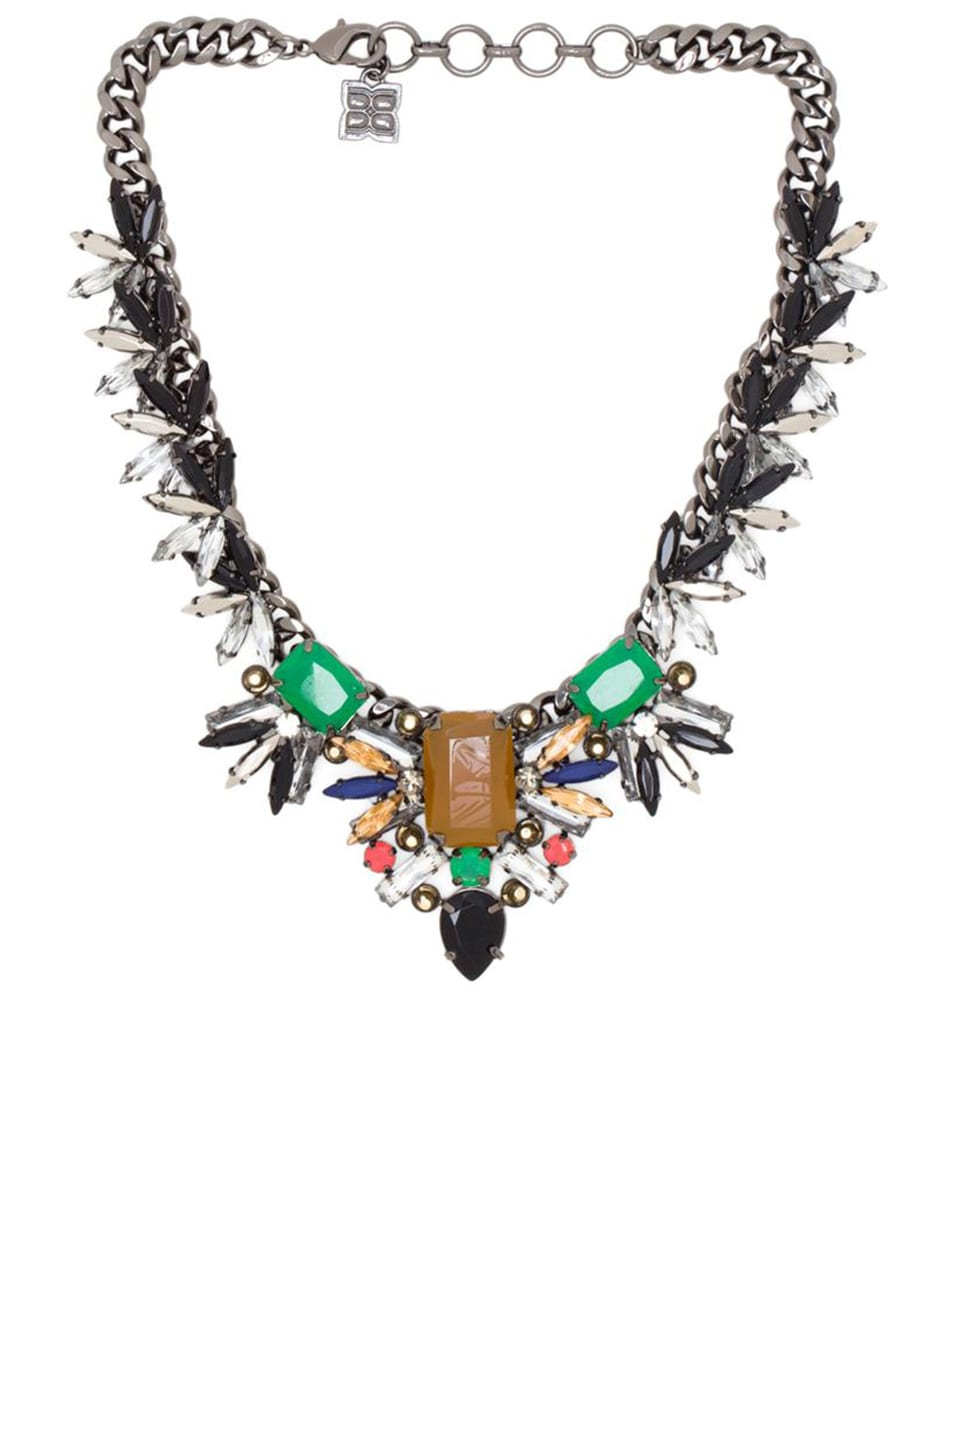 BCBGMAXAZRIA Gemstone Spike Necklace in Amazon Green Combo